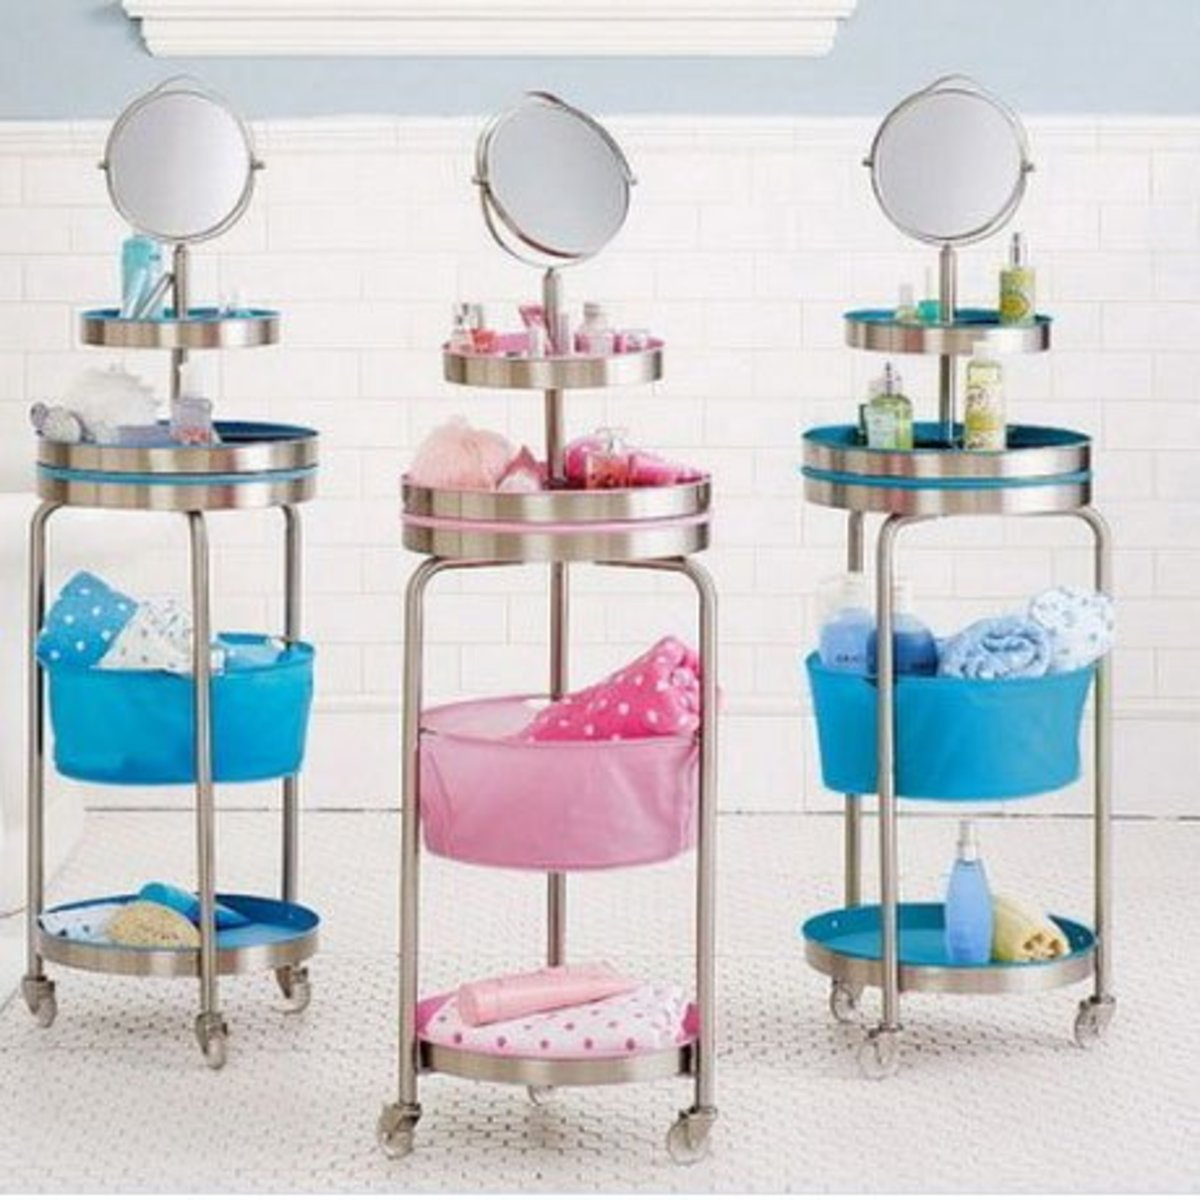 Tiered Trolleys | DIY Makeup Organization Ideas